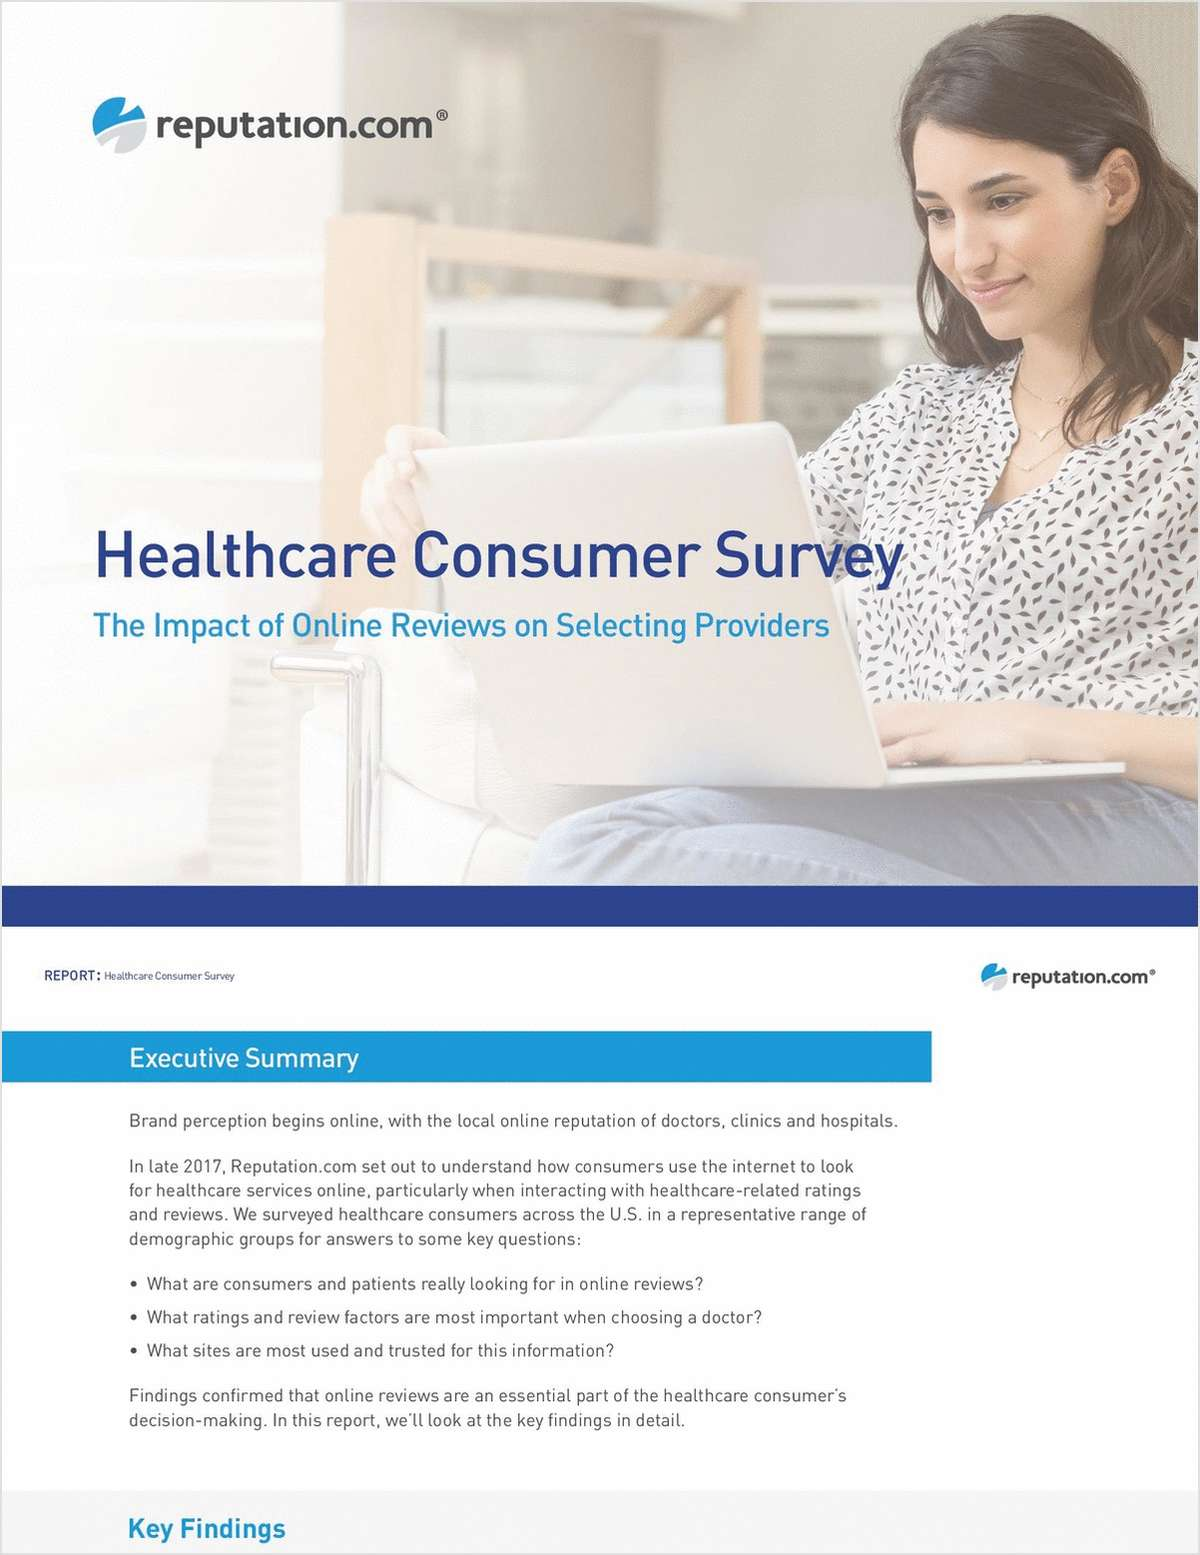 Healthcare Consumer Survey